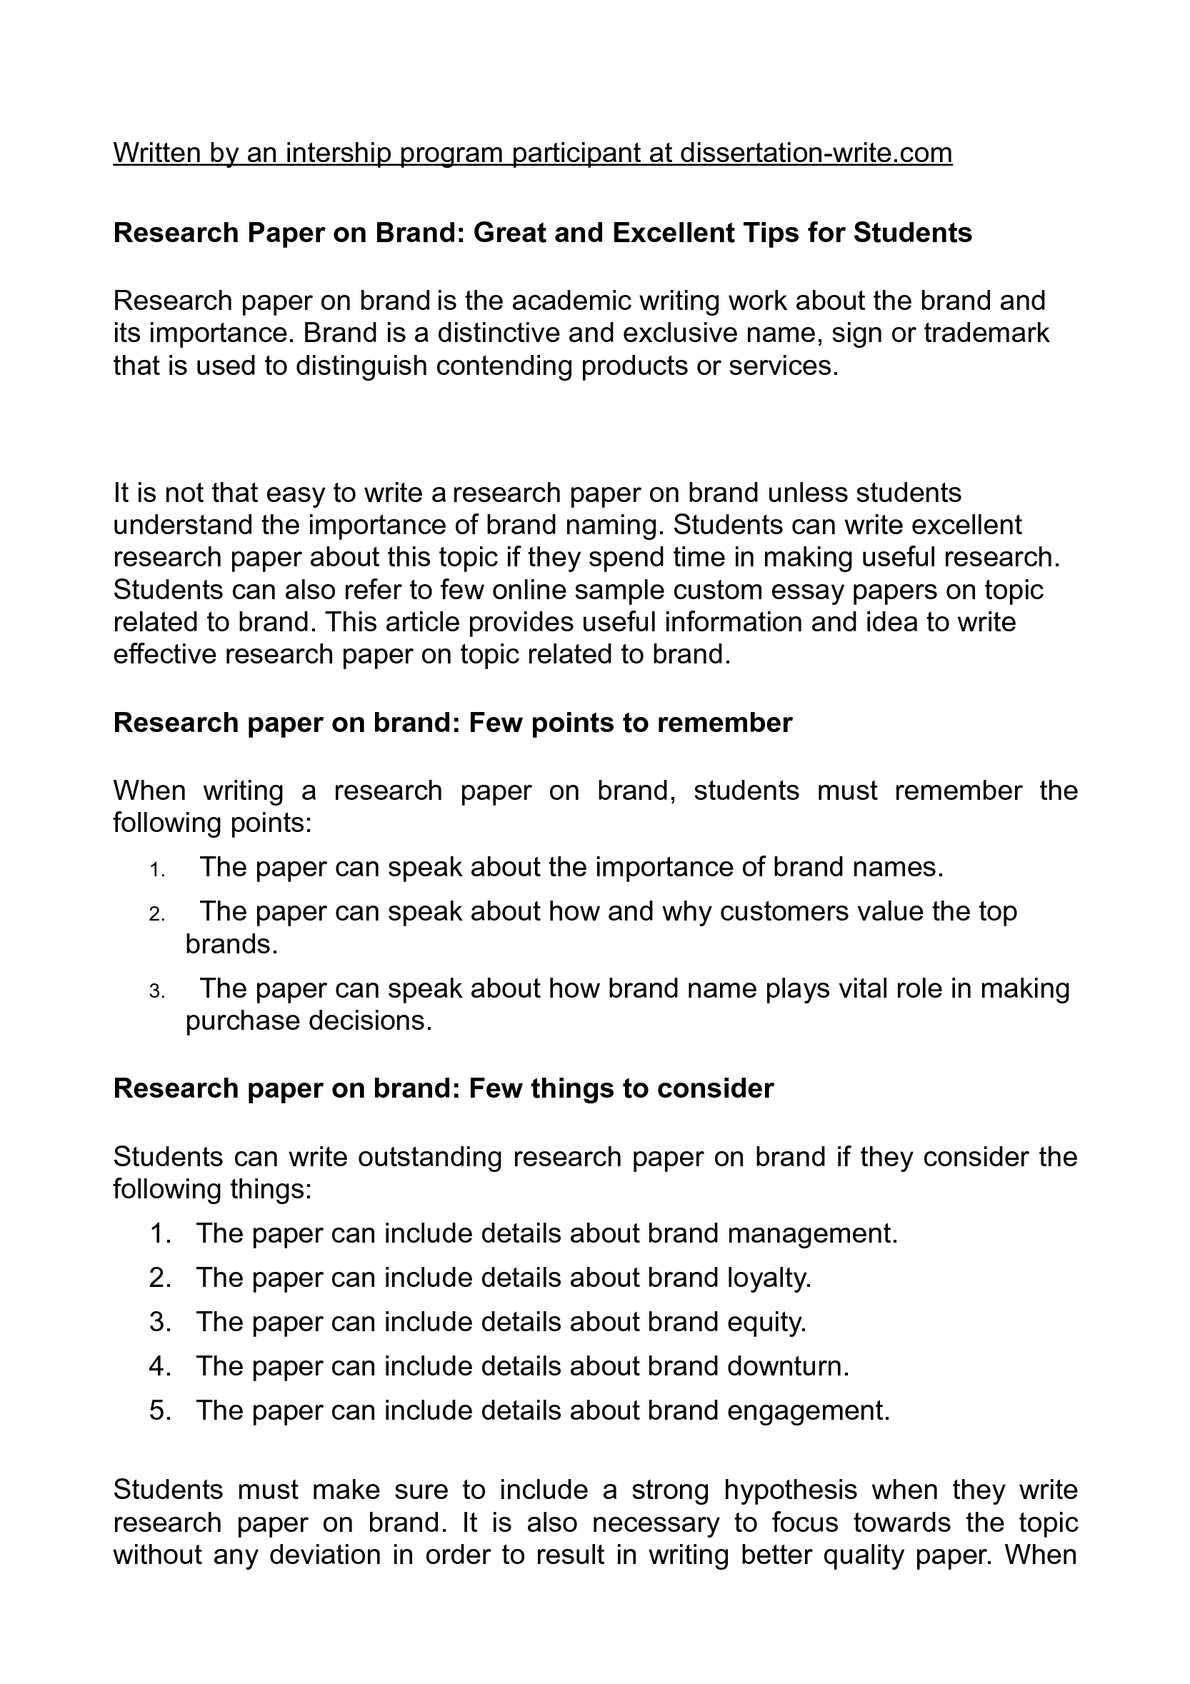 Example Essay English  Paper Essay Writing also What Is A Synthesis Essay Calamo   Research Paper On Brand Great And Excellent Tips  Examples Of Thesis Statements For Expository Essays